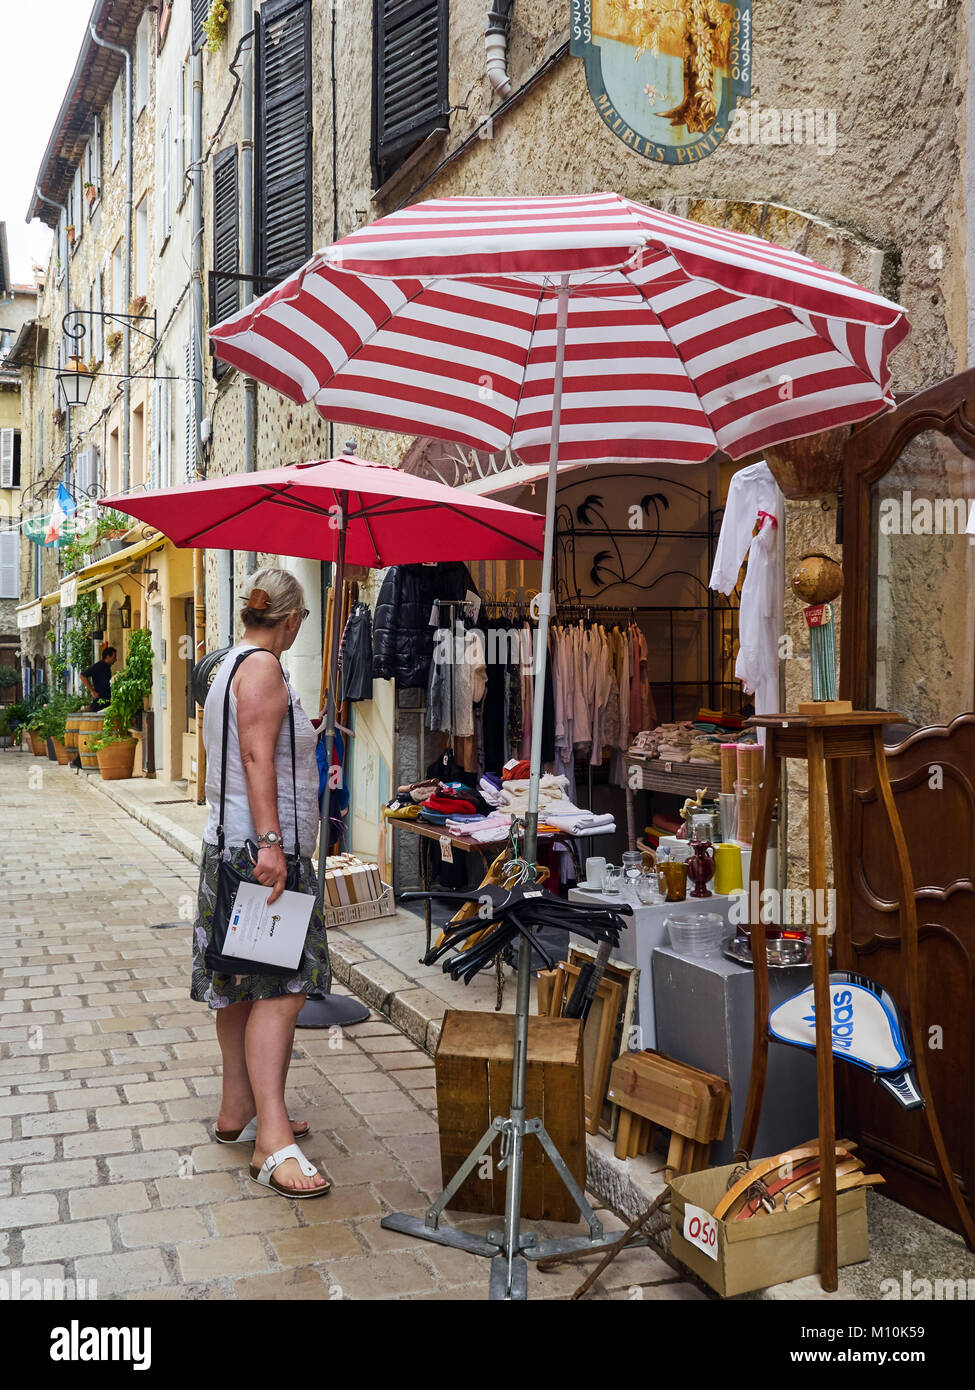 Street in the old town, Vence, South of France, with shopper looking at items in secondhand shop - Stock Image